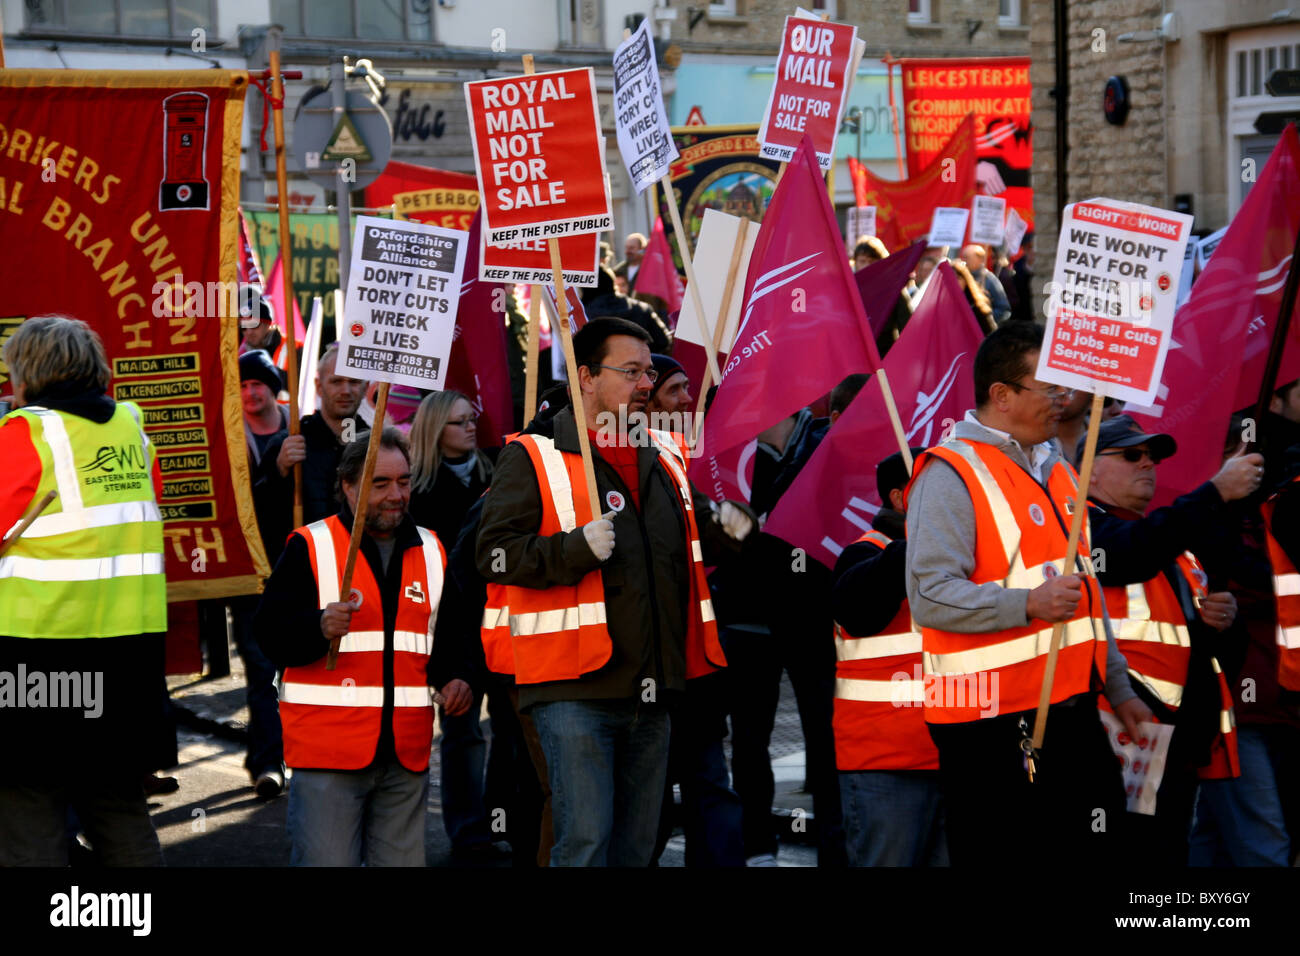 Royal mail protester - Stock Image